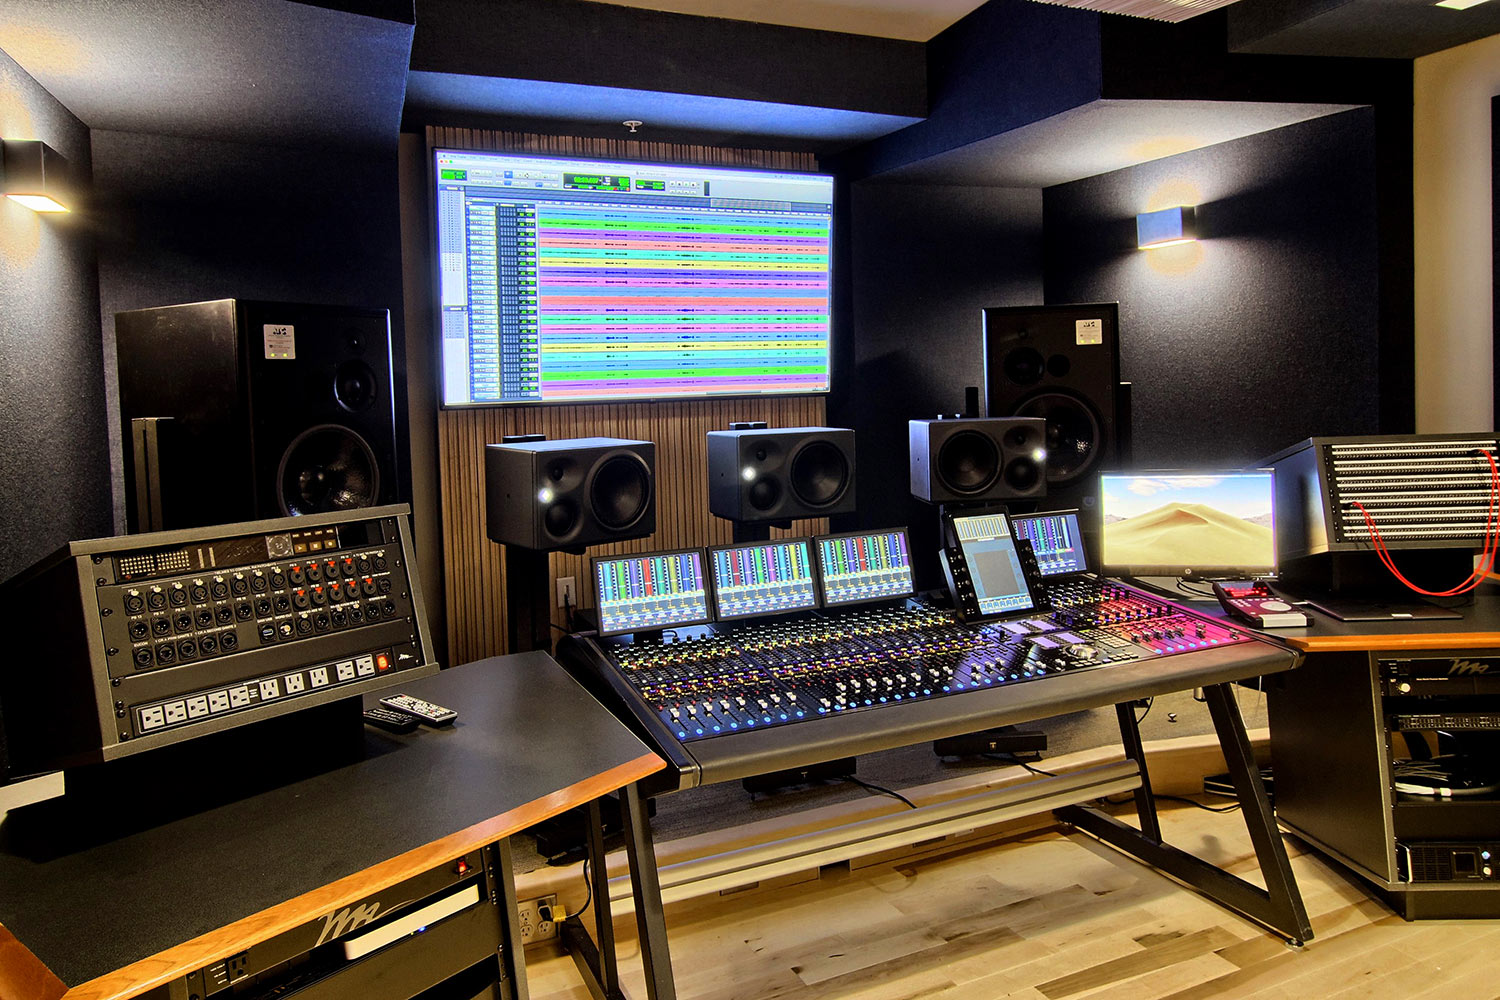 Interlochen has recently completed their new complex. A key component of the new complex is a state-of-the-art recording/teaching studio complex developed by WSDG. Control Room